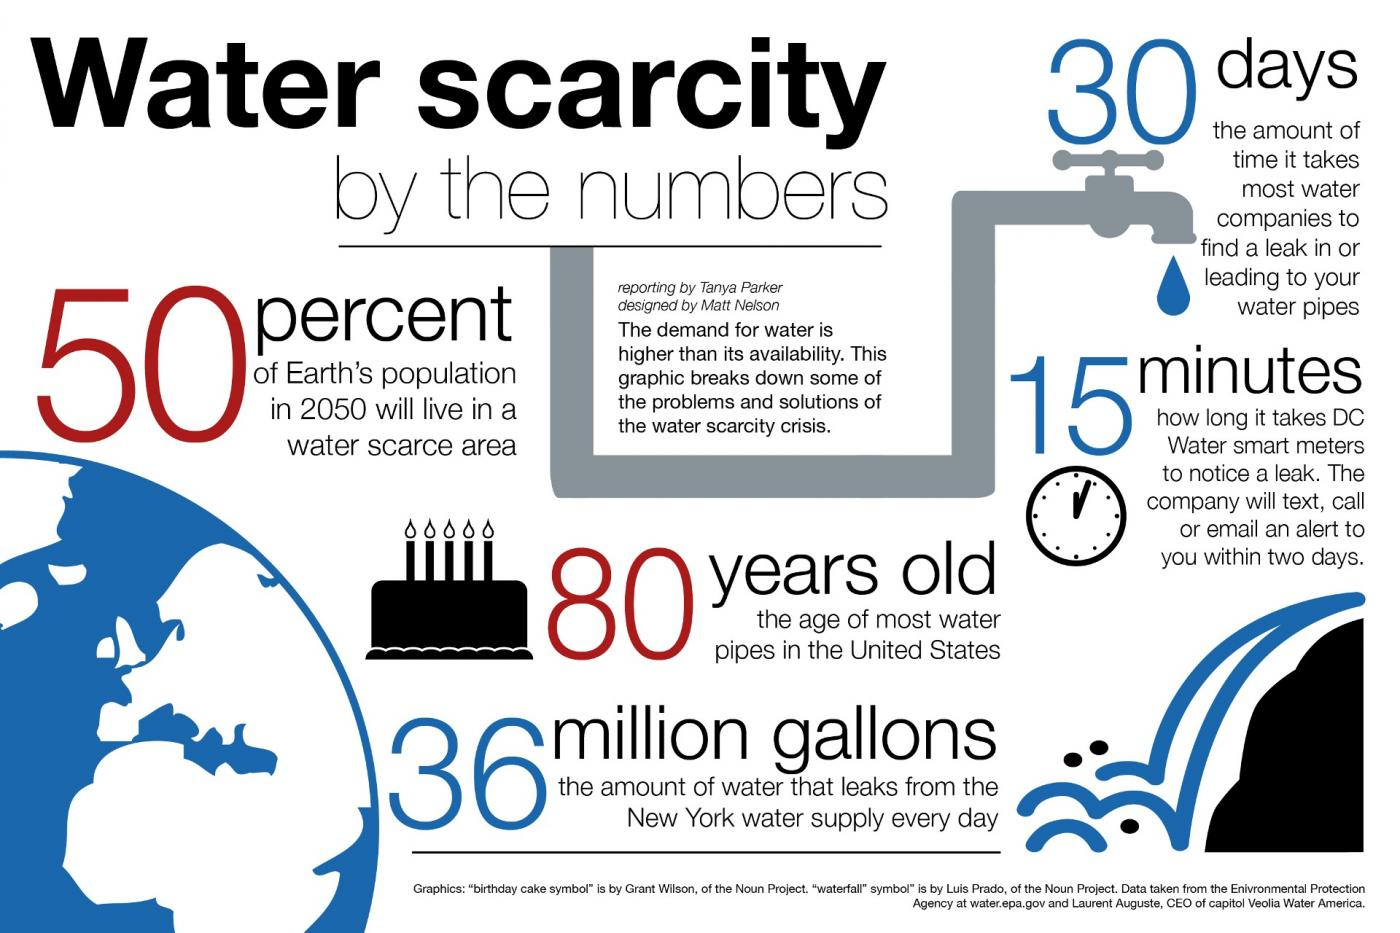 short essay on water scarcity Water scarcity essays: over 180,000 water scarcity essays, water scarcity term papers, water scarcity research paper, book reports 184.